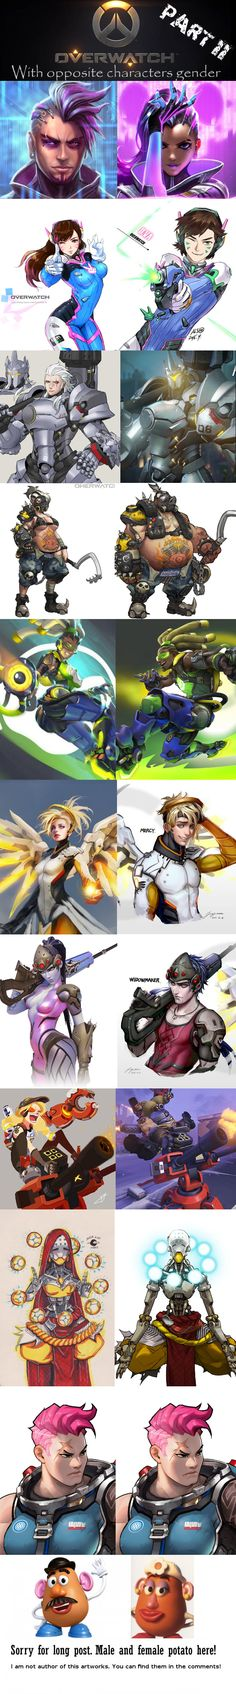 Overwatch characters in opposite gender! Part II